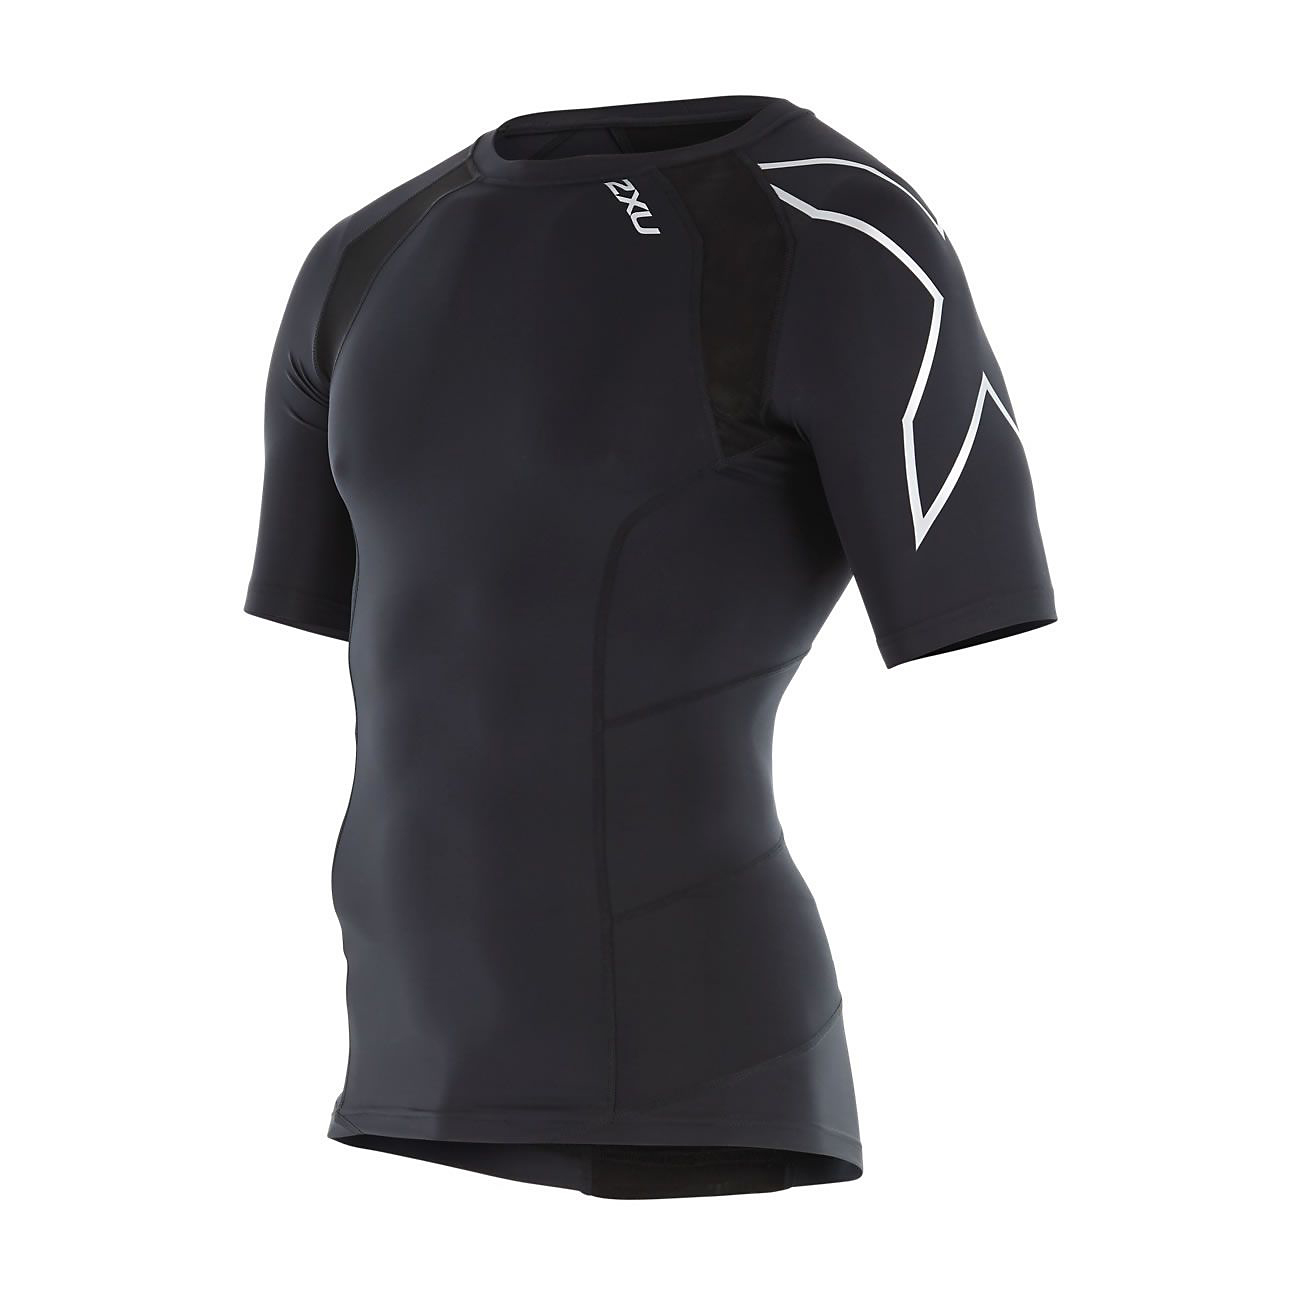 db3b4e5ccf41f Details about 2XU Men's Compression Short Sleeve Top Black/Silver Size  X-Large